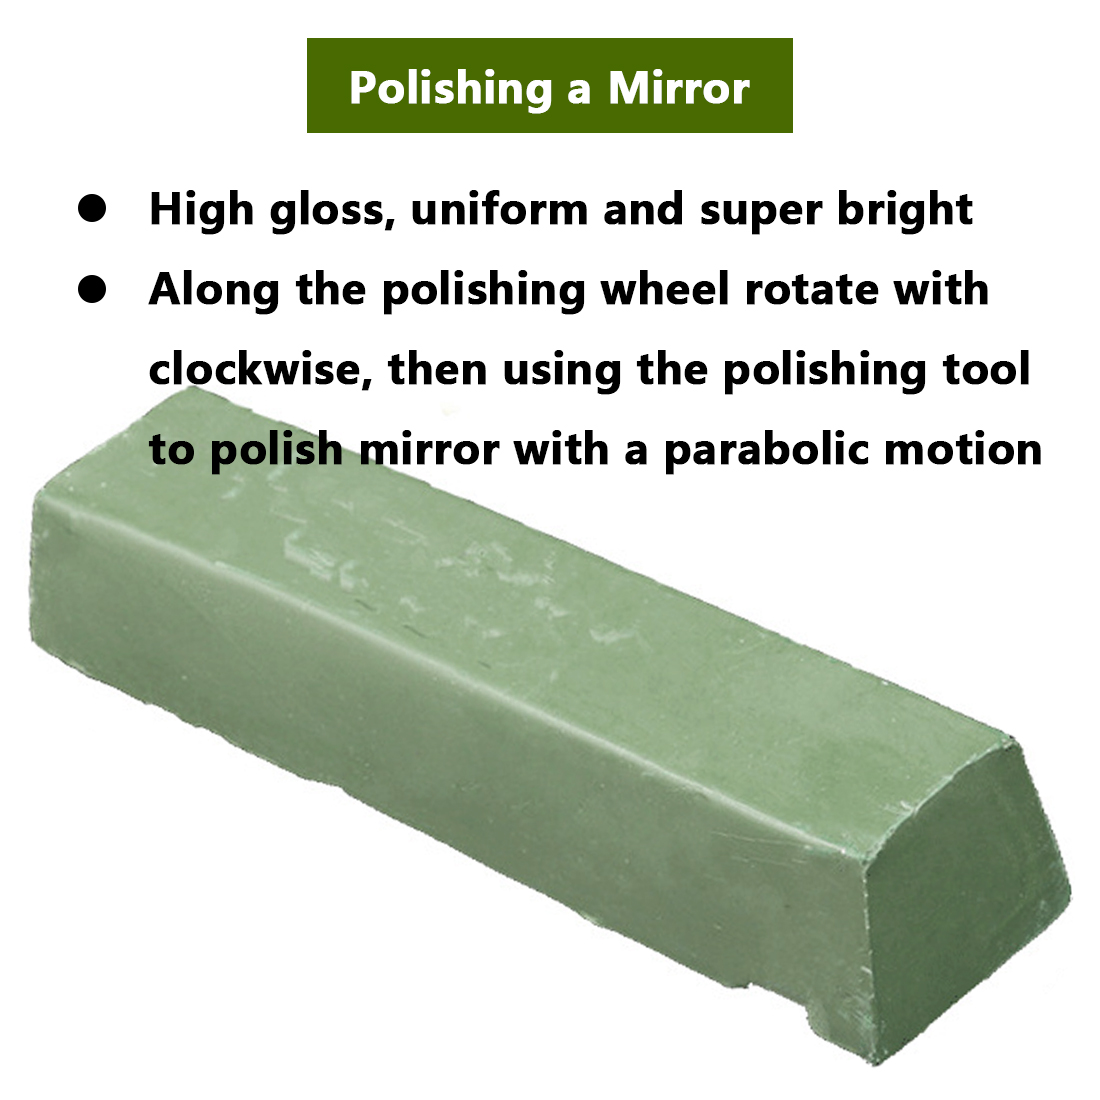 metal paste polishing for stainless steel copper products aluminum products chromium oxide abrasive sharpener polishing wax Metal Paste Polishing For Stainless Steel ,Copper Products, Aluminum Products,Chromium Oxide Abrasive Sharpener Polishing Wax